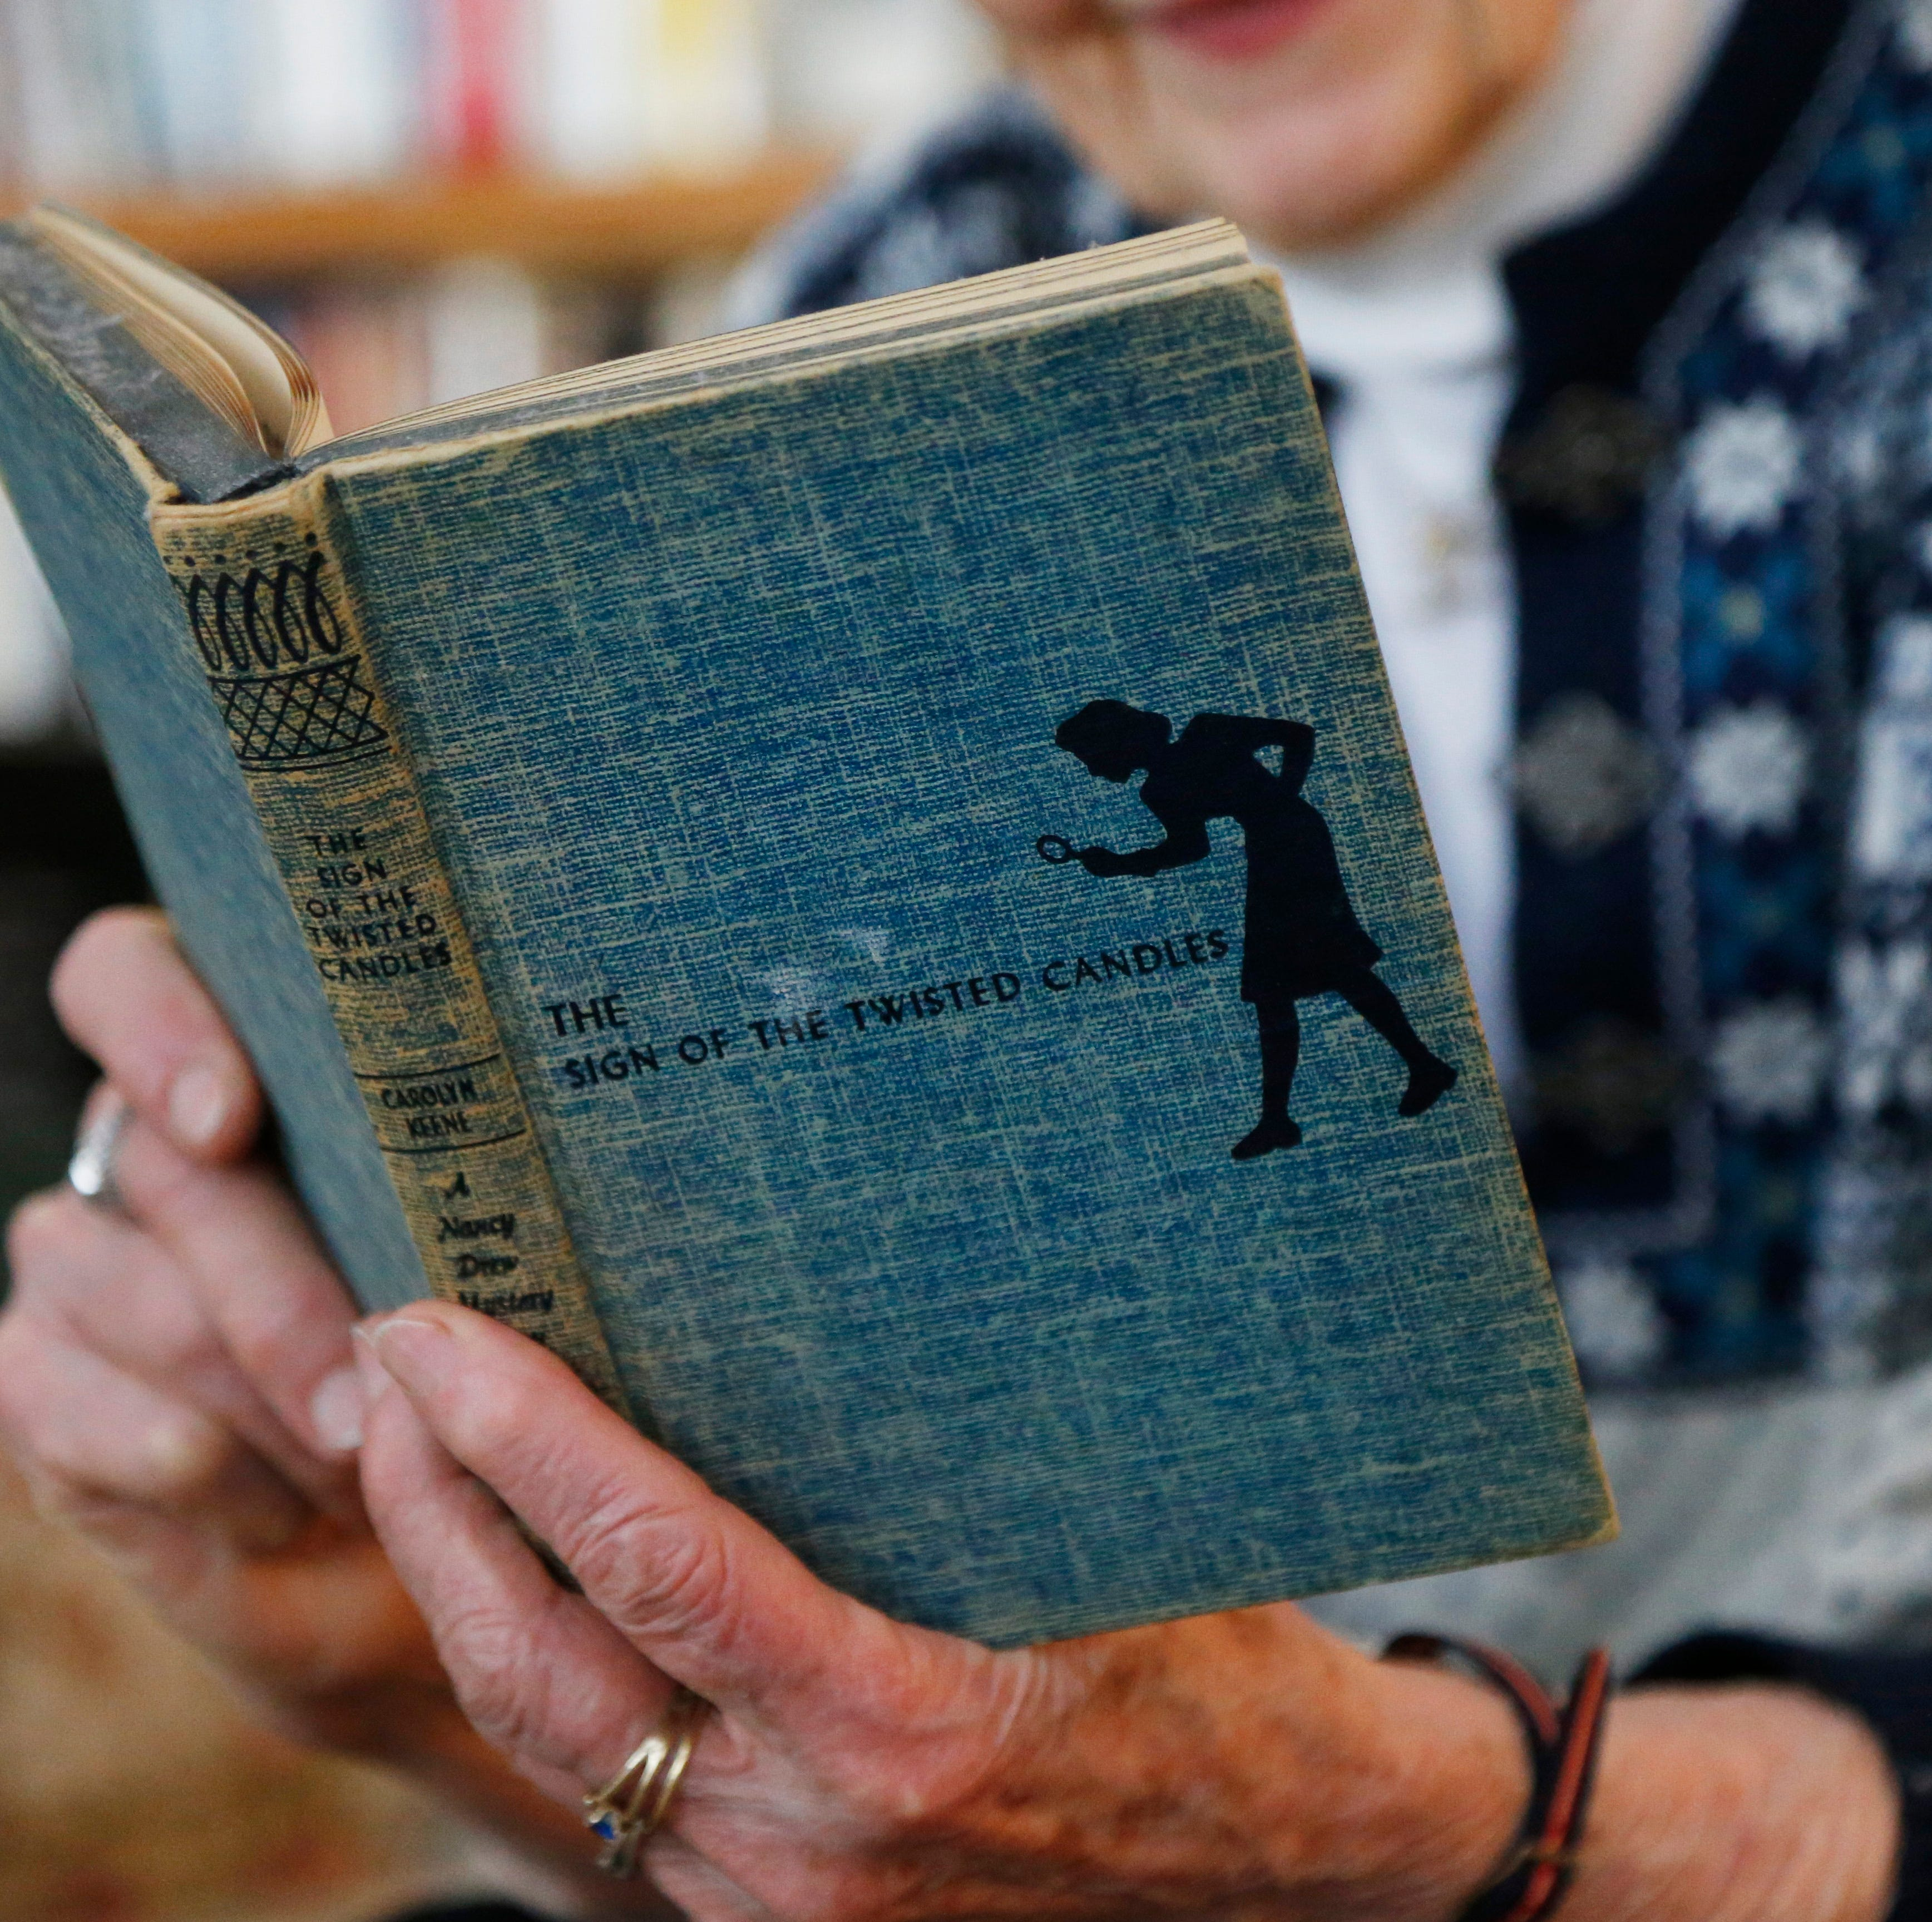 Through the ages, Nancy Drew continues to inspire women, men of all ages